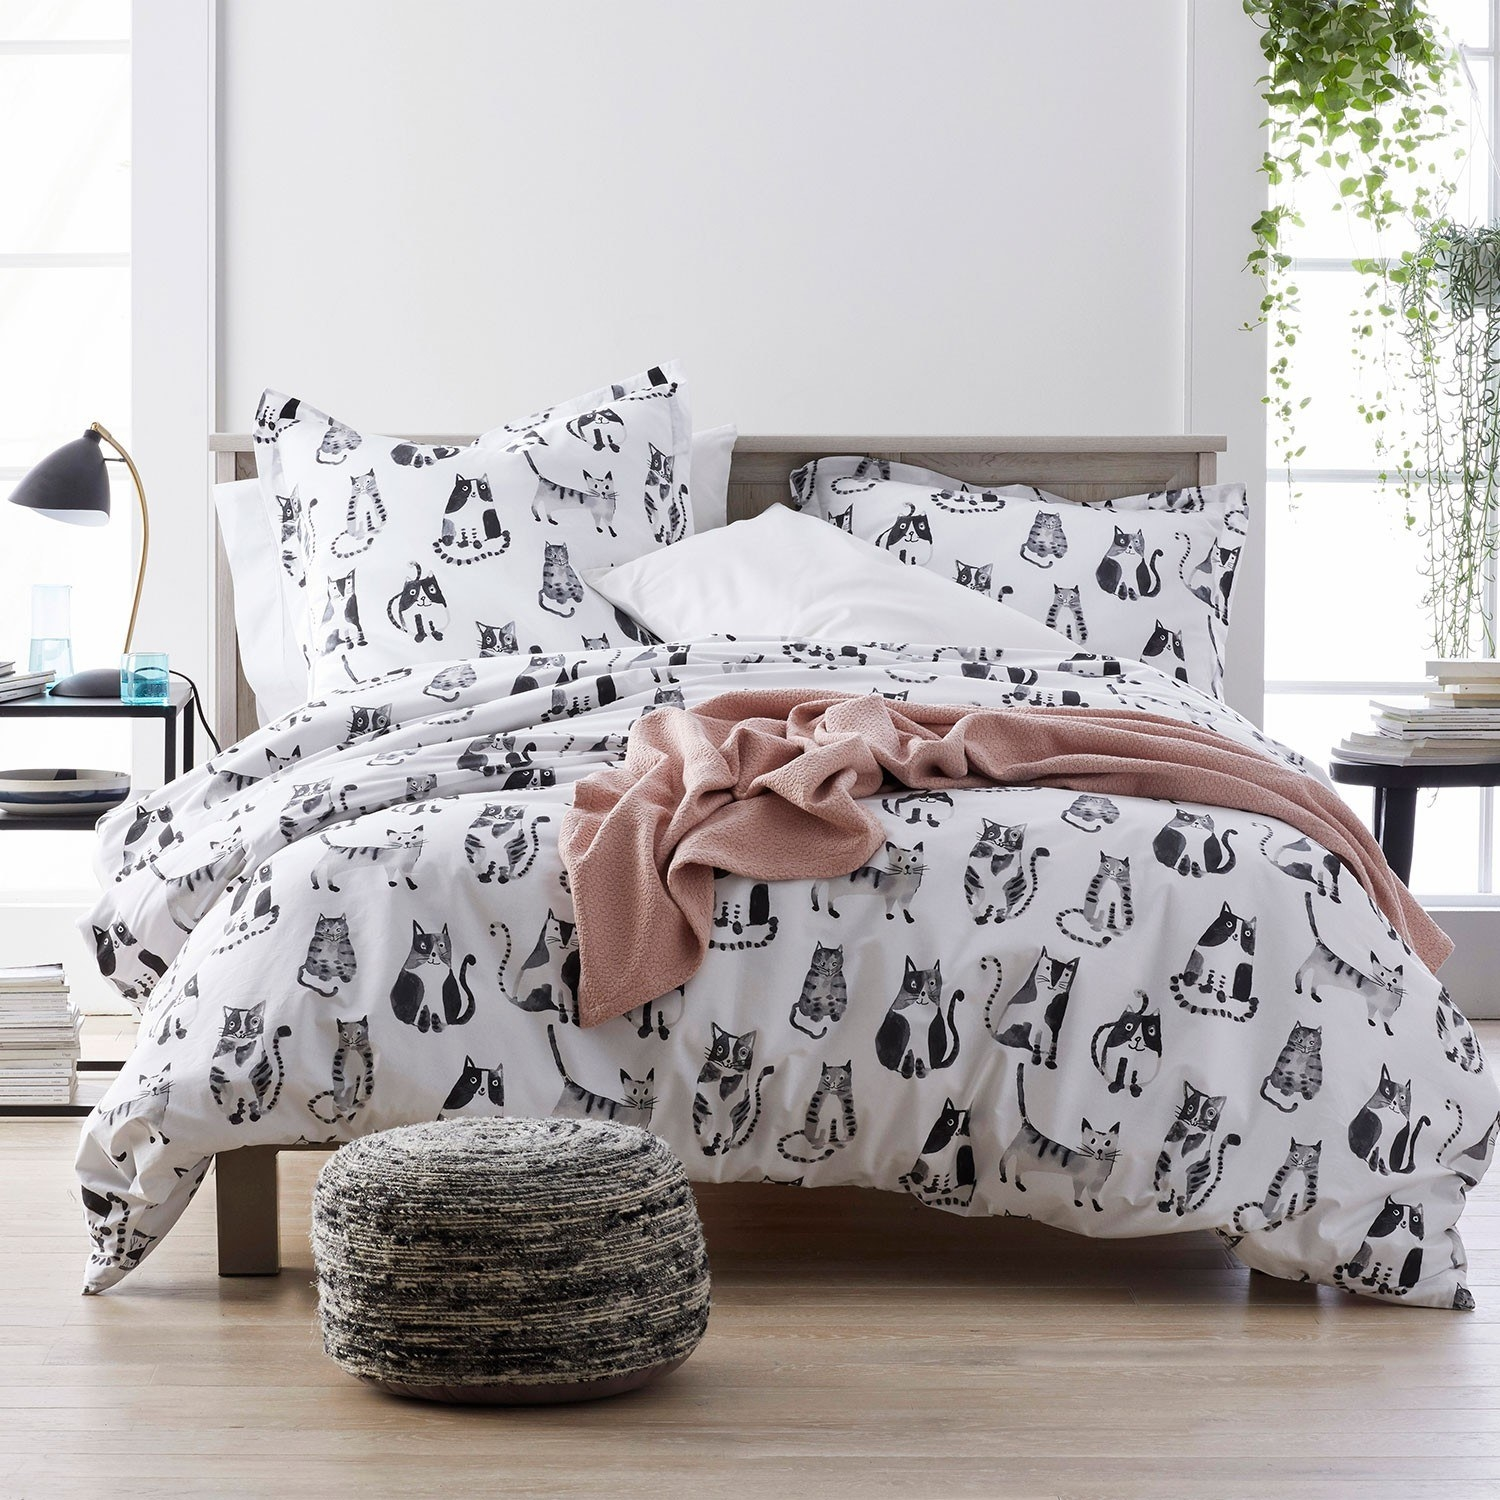 The Best Places To Buy Bedding